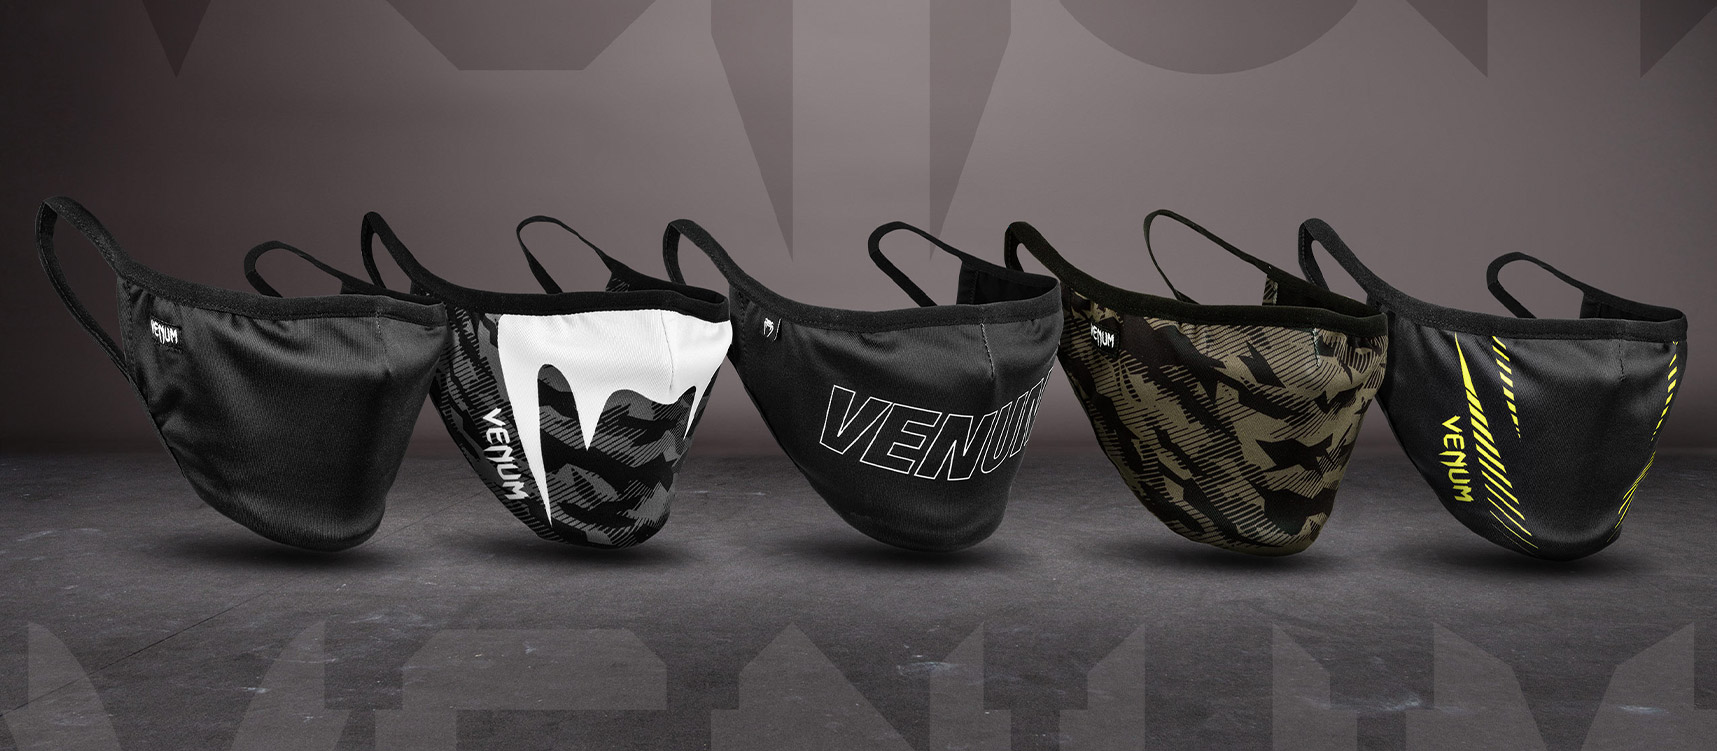 Venum Face Masks